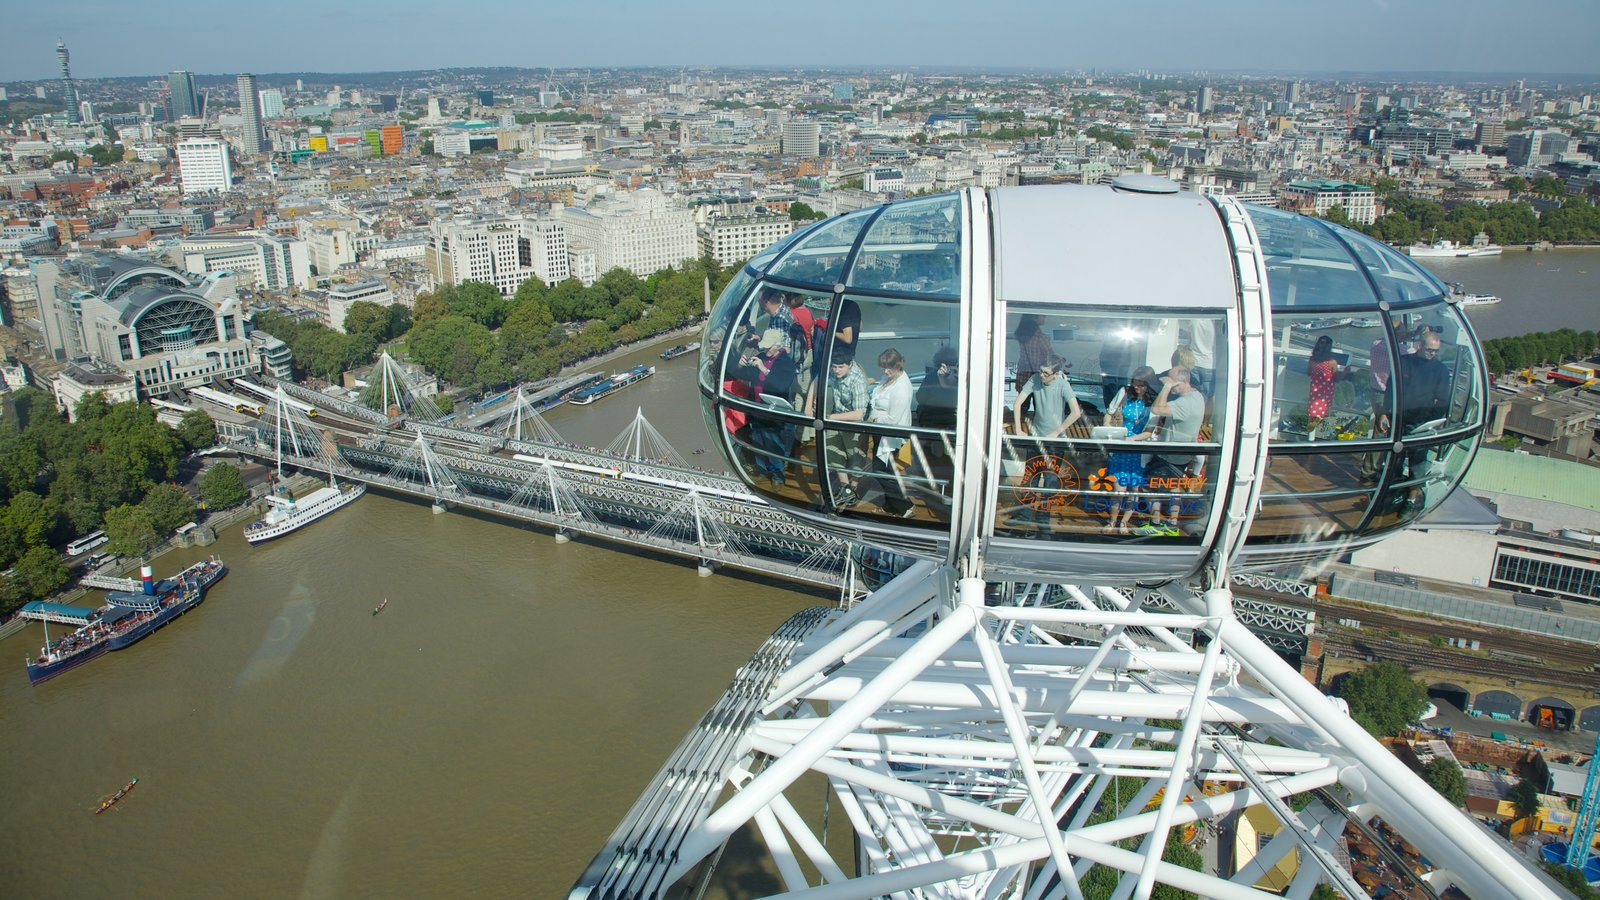 London Eye ofreciendo un río o arroyo, vistas y arquitectura moderna